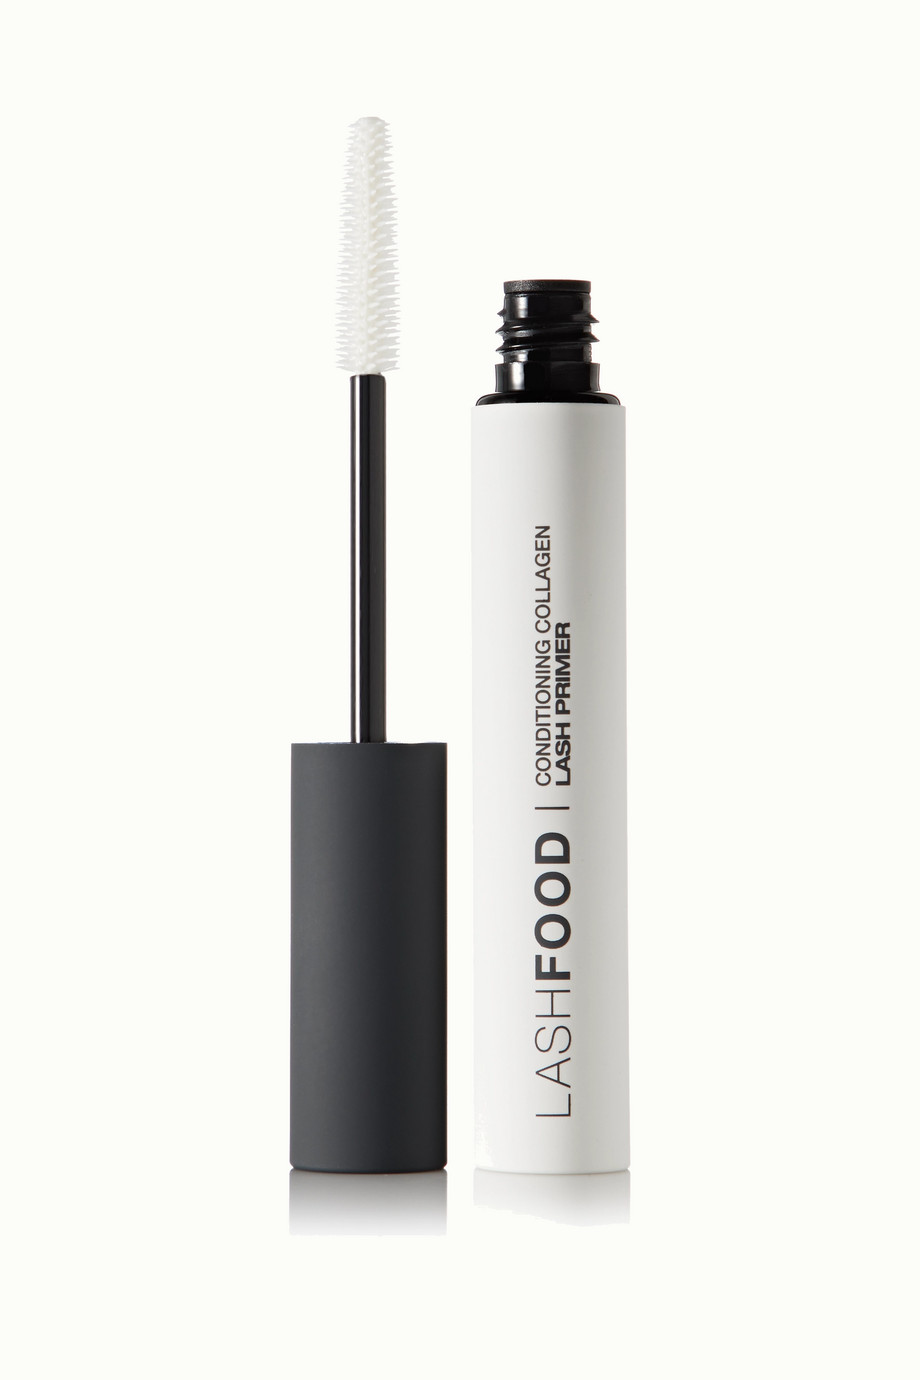 LashFood Conditioning Collagen Lash Primer, 8 ml – Mascara-Primer